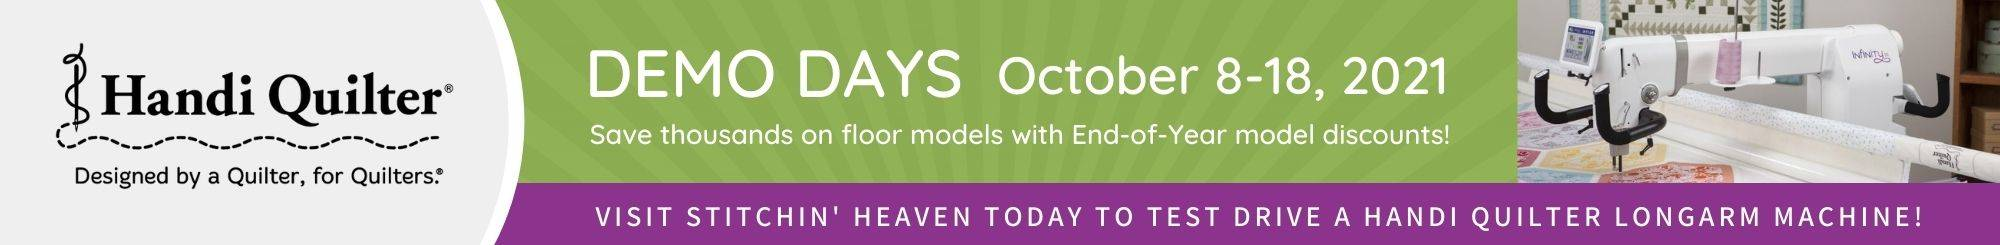 Handi Quilter Demo Days October 8 - 18, 2021. Save thousands on floor models with End of Year model discounts!